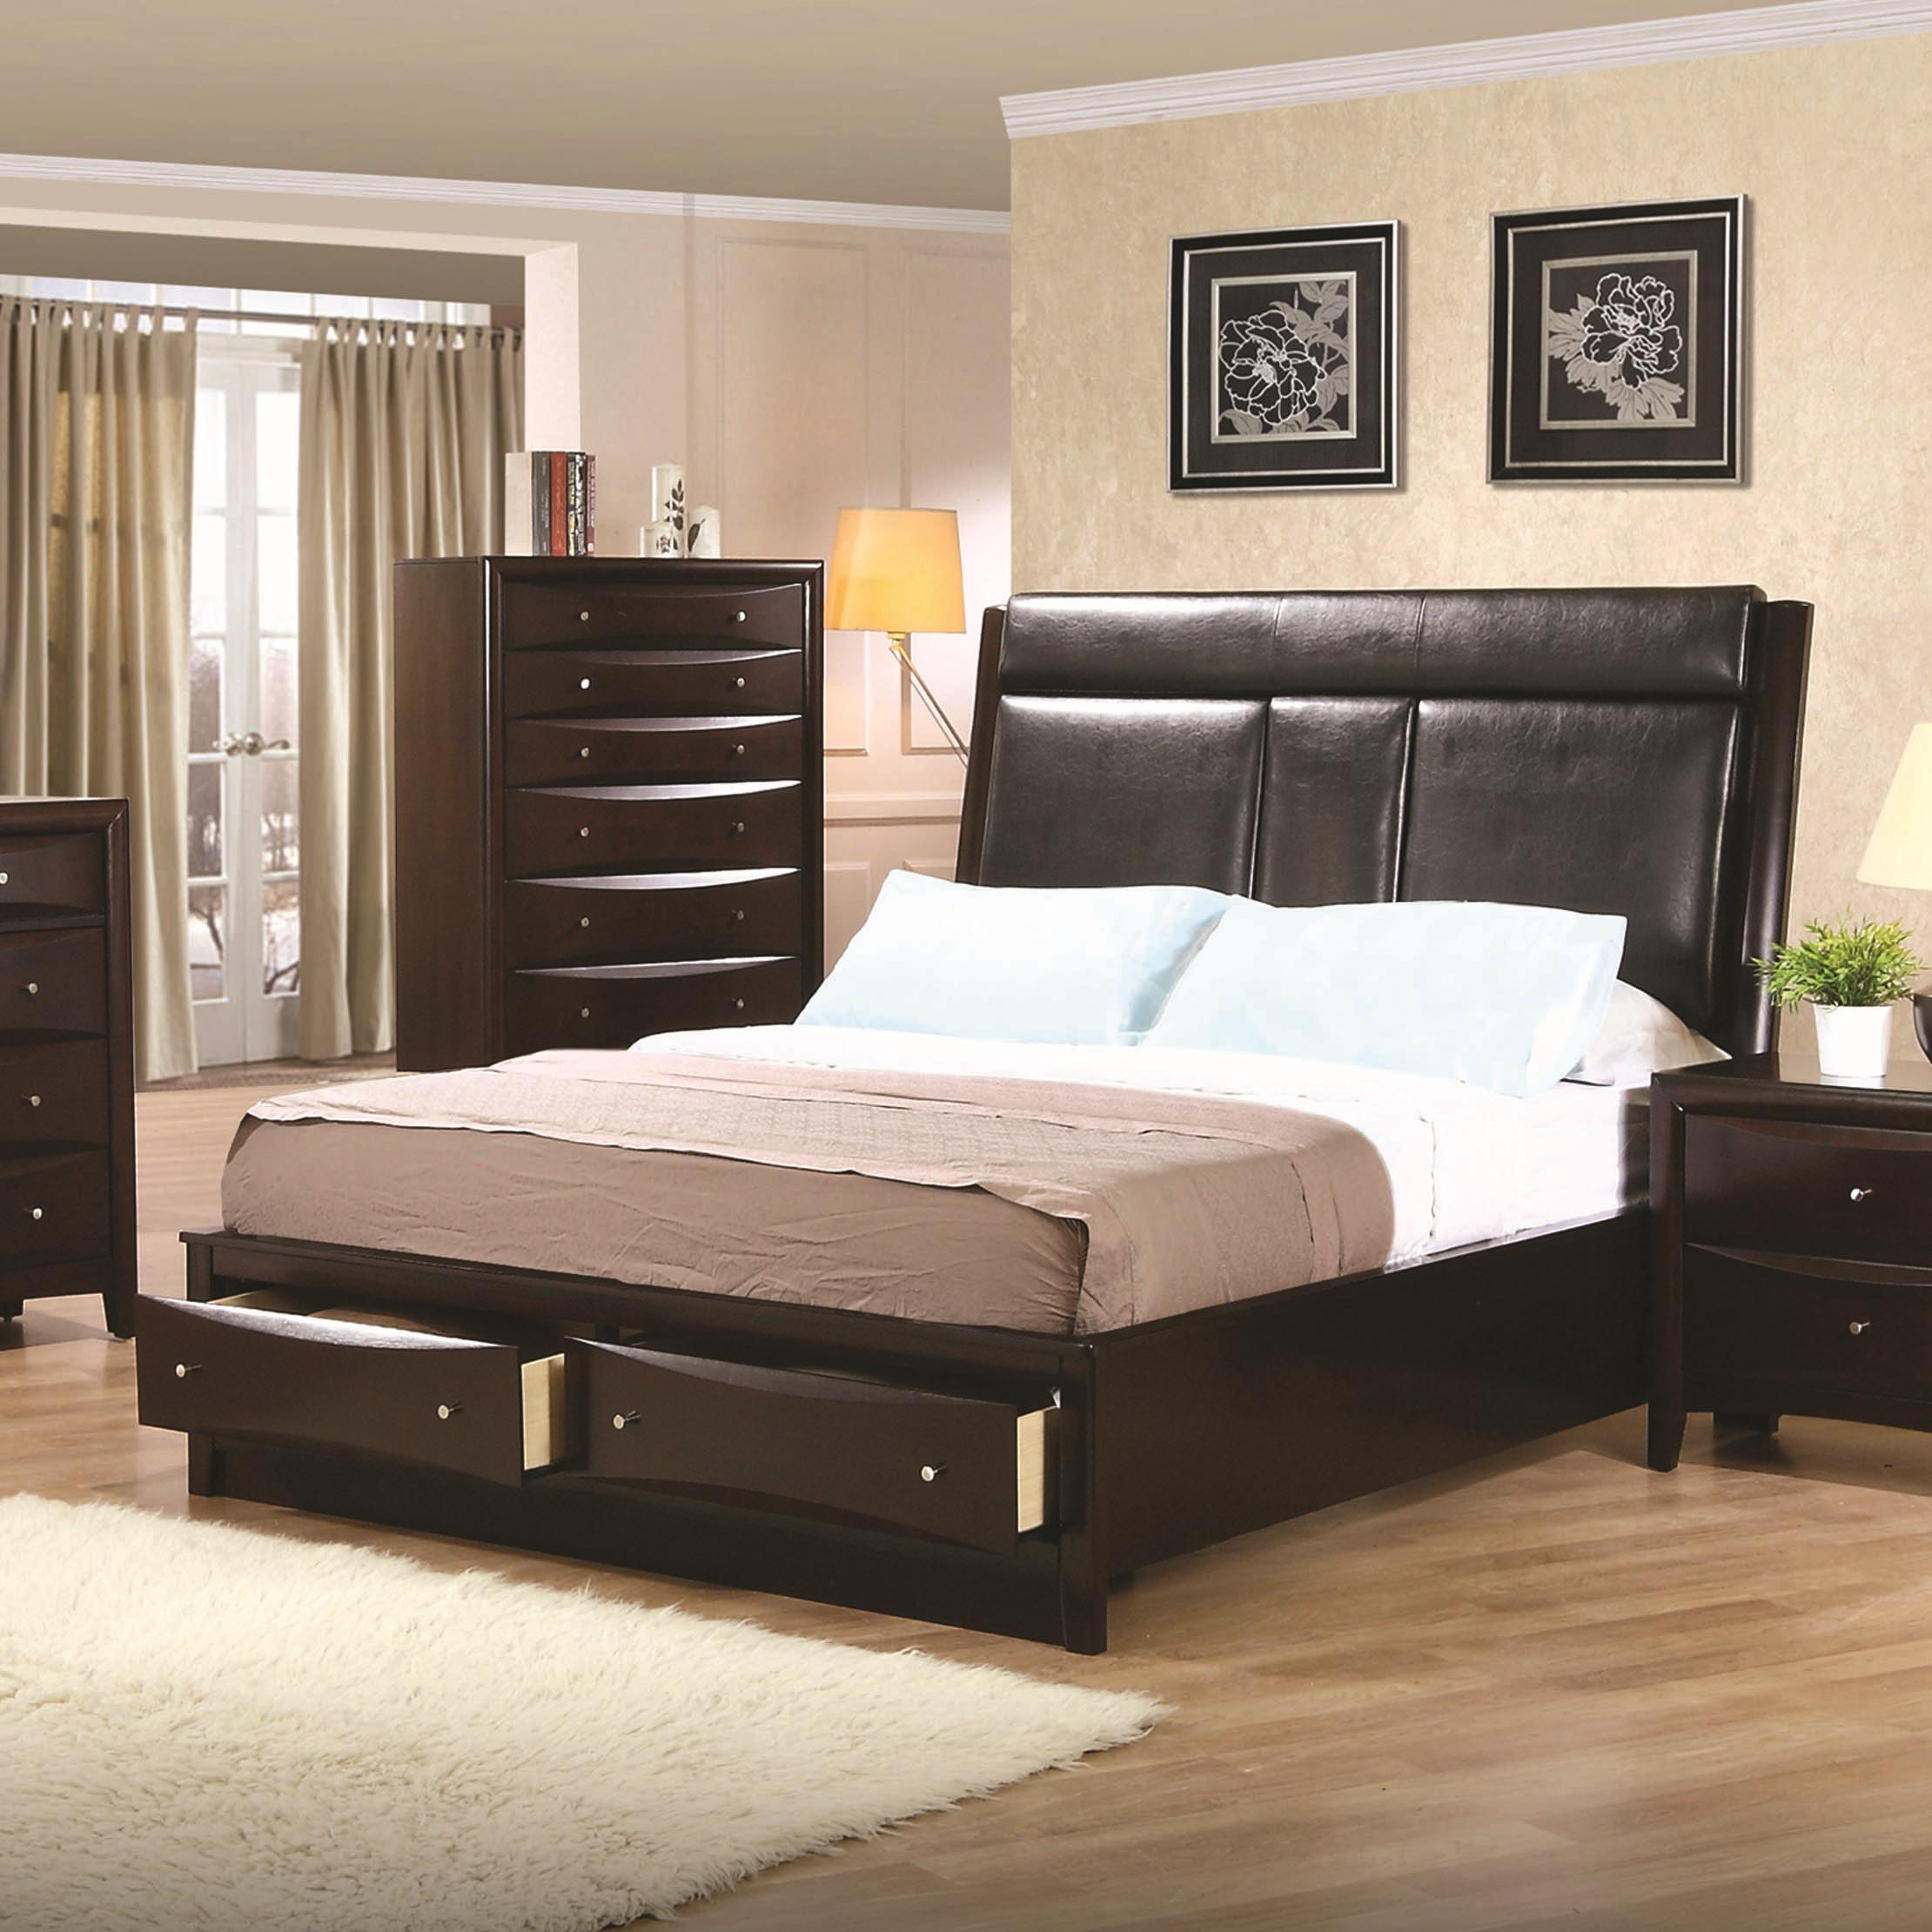 Phoenix Queen Upholstered Storage Platform Bed Quality Furniture At Affordable Prices In Philadelphia Main Line Pa